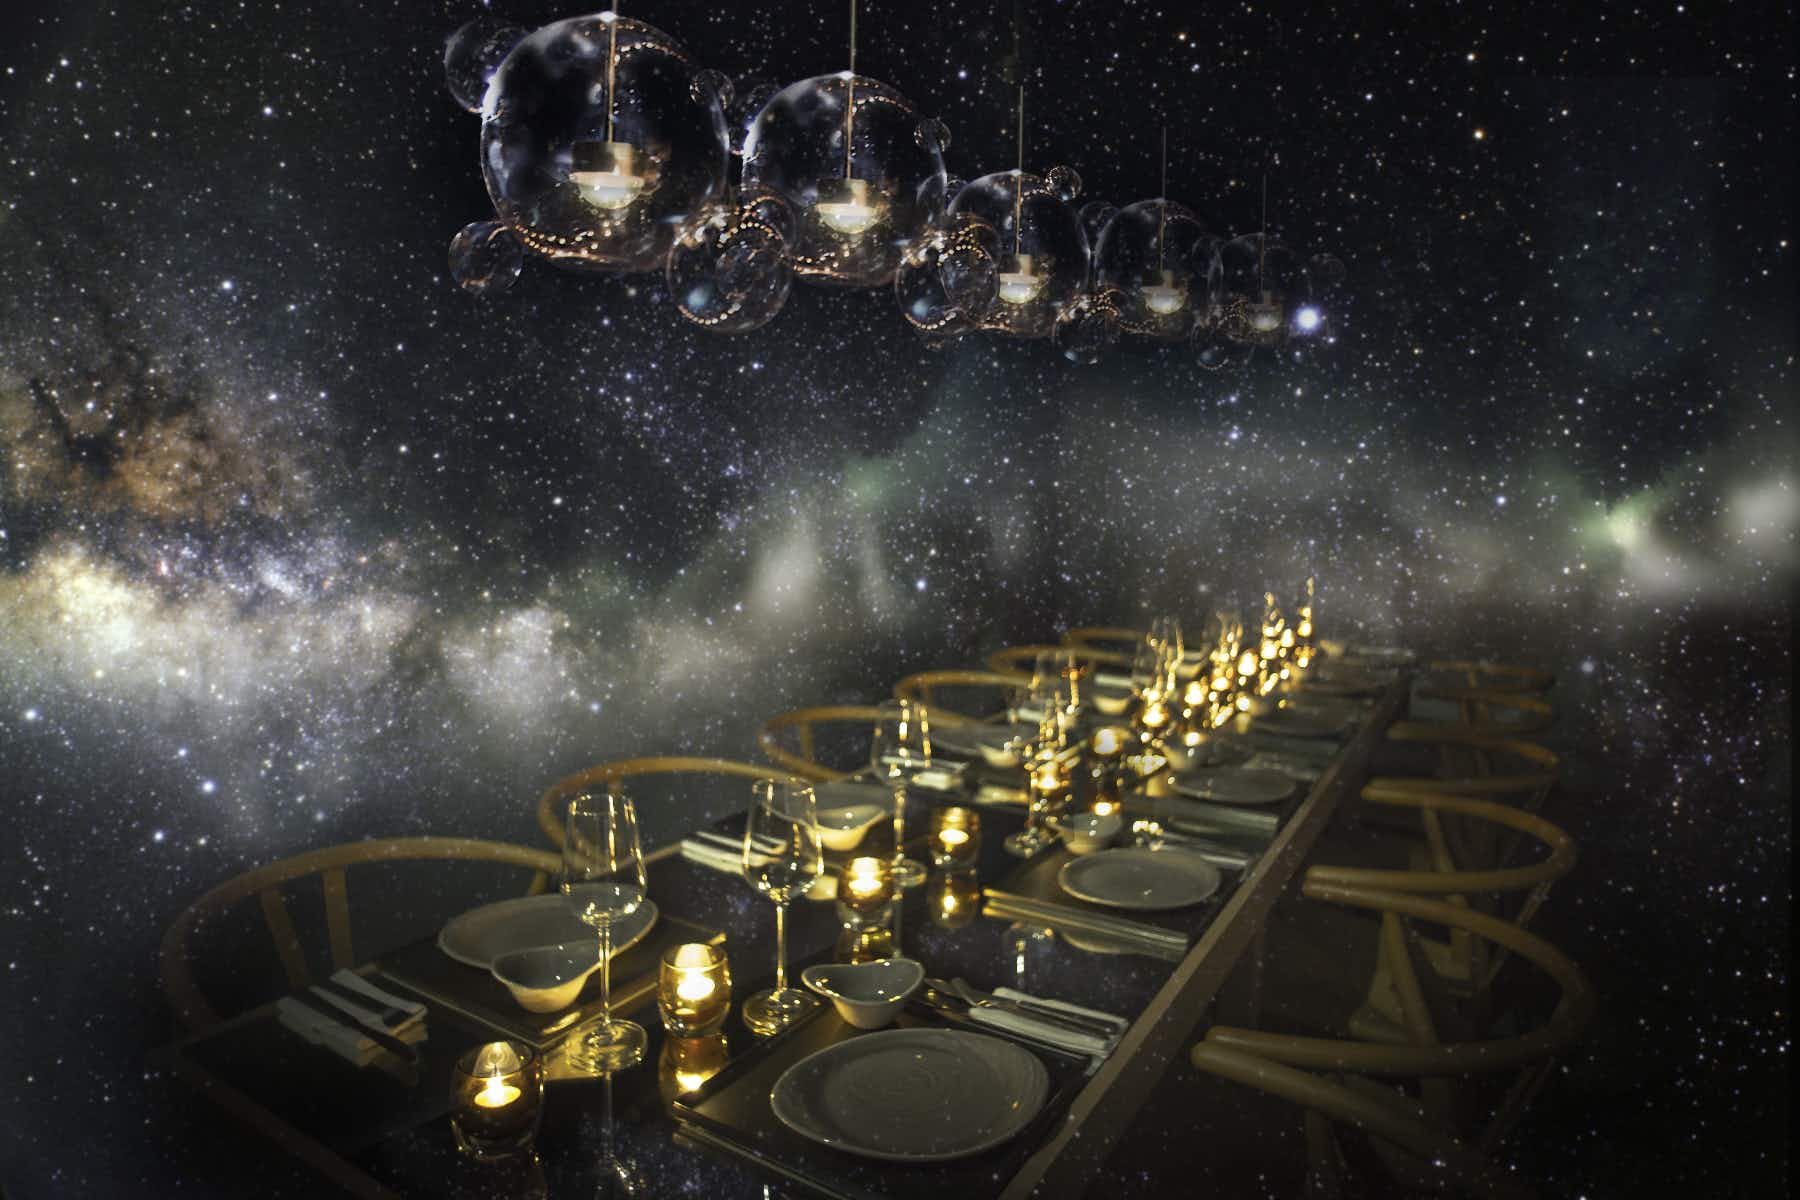 Find your lucky star at this celestial dining experience in Kuala Lumpur